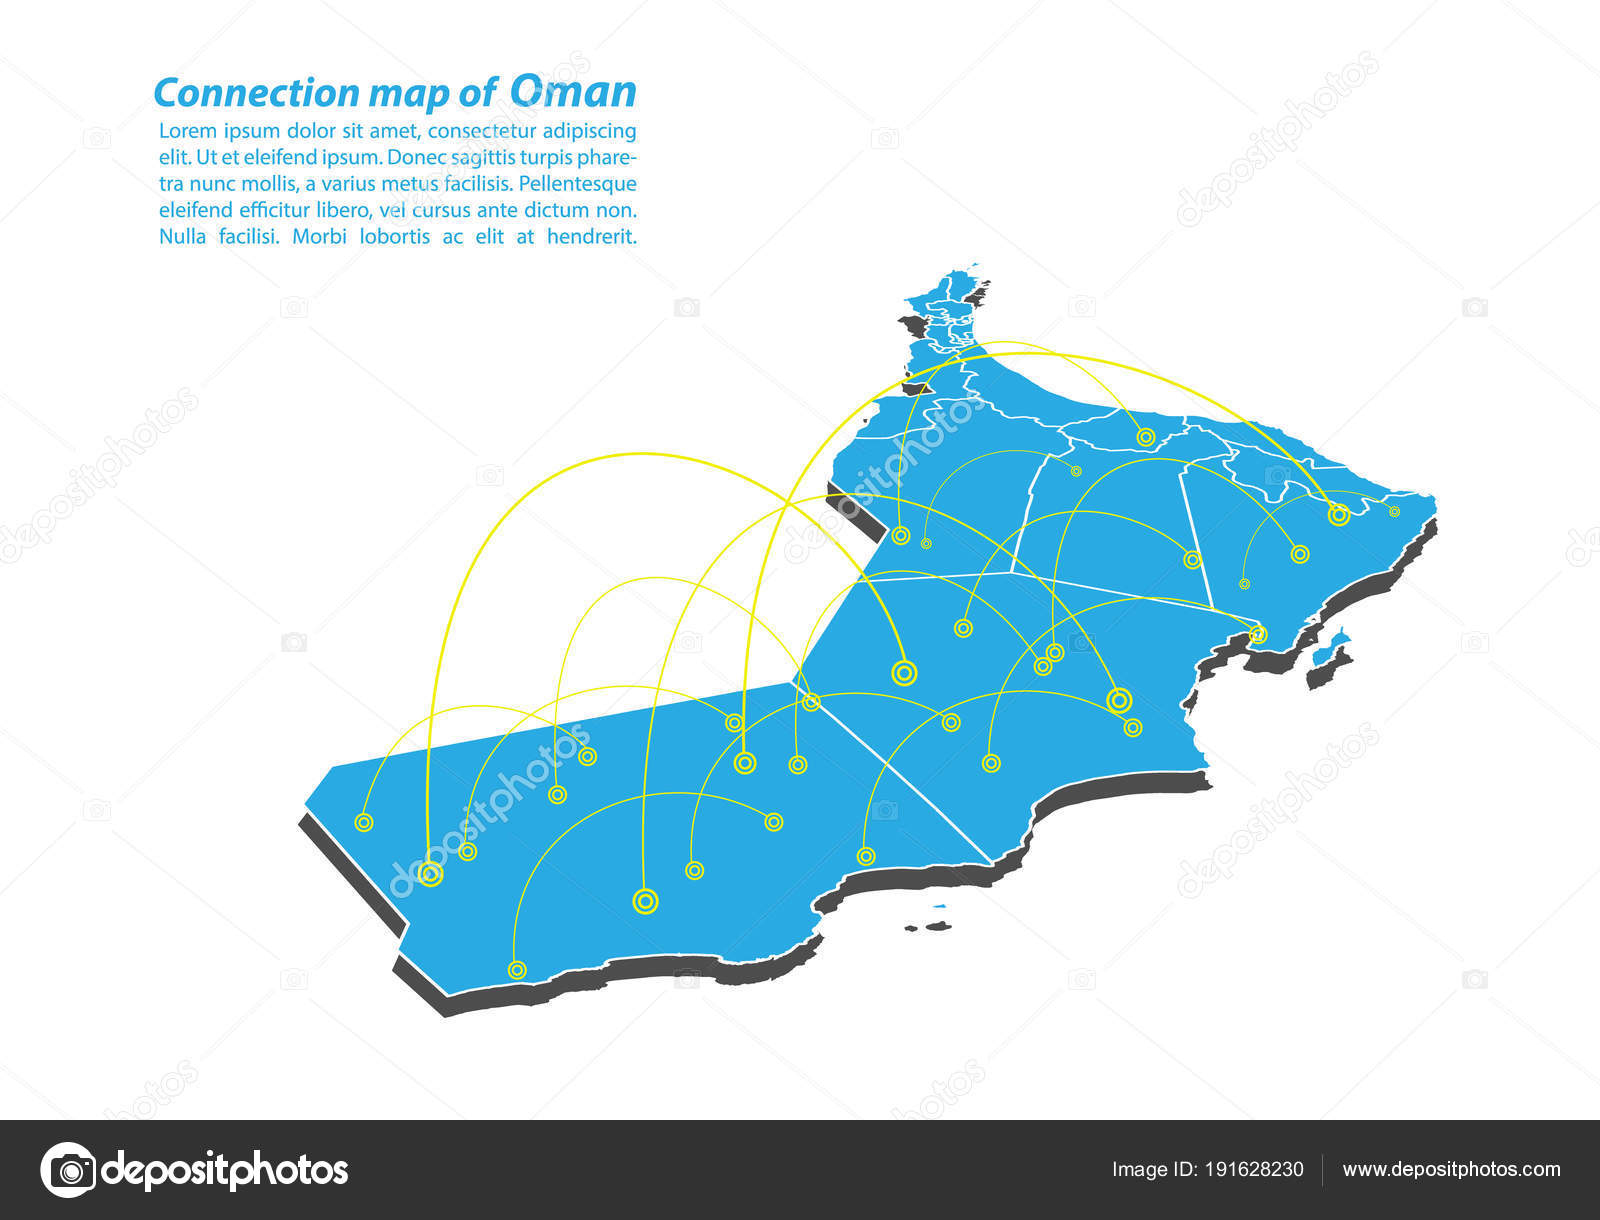 Modern Oman Map Connections Network Design Best Internet Concept